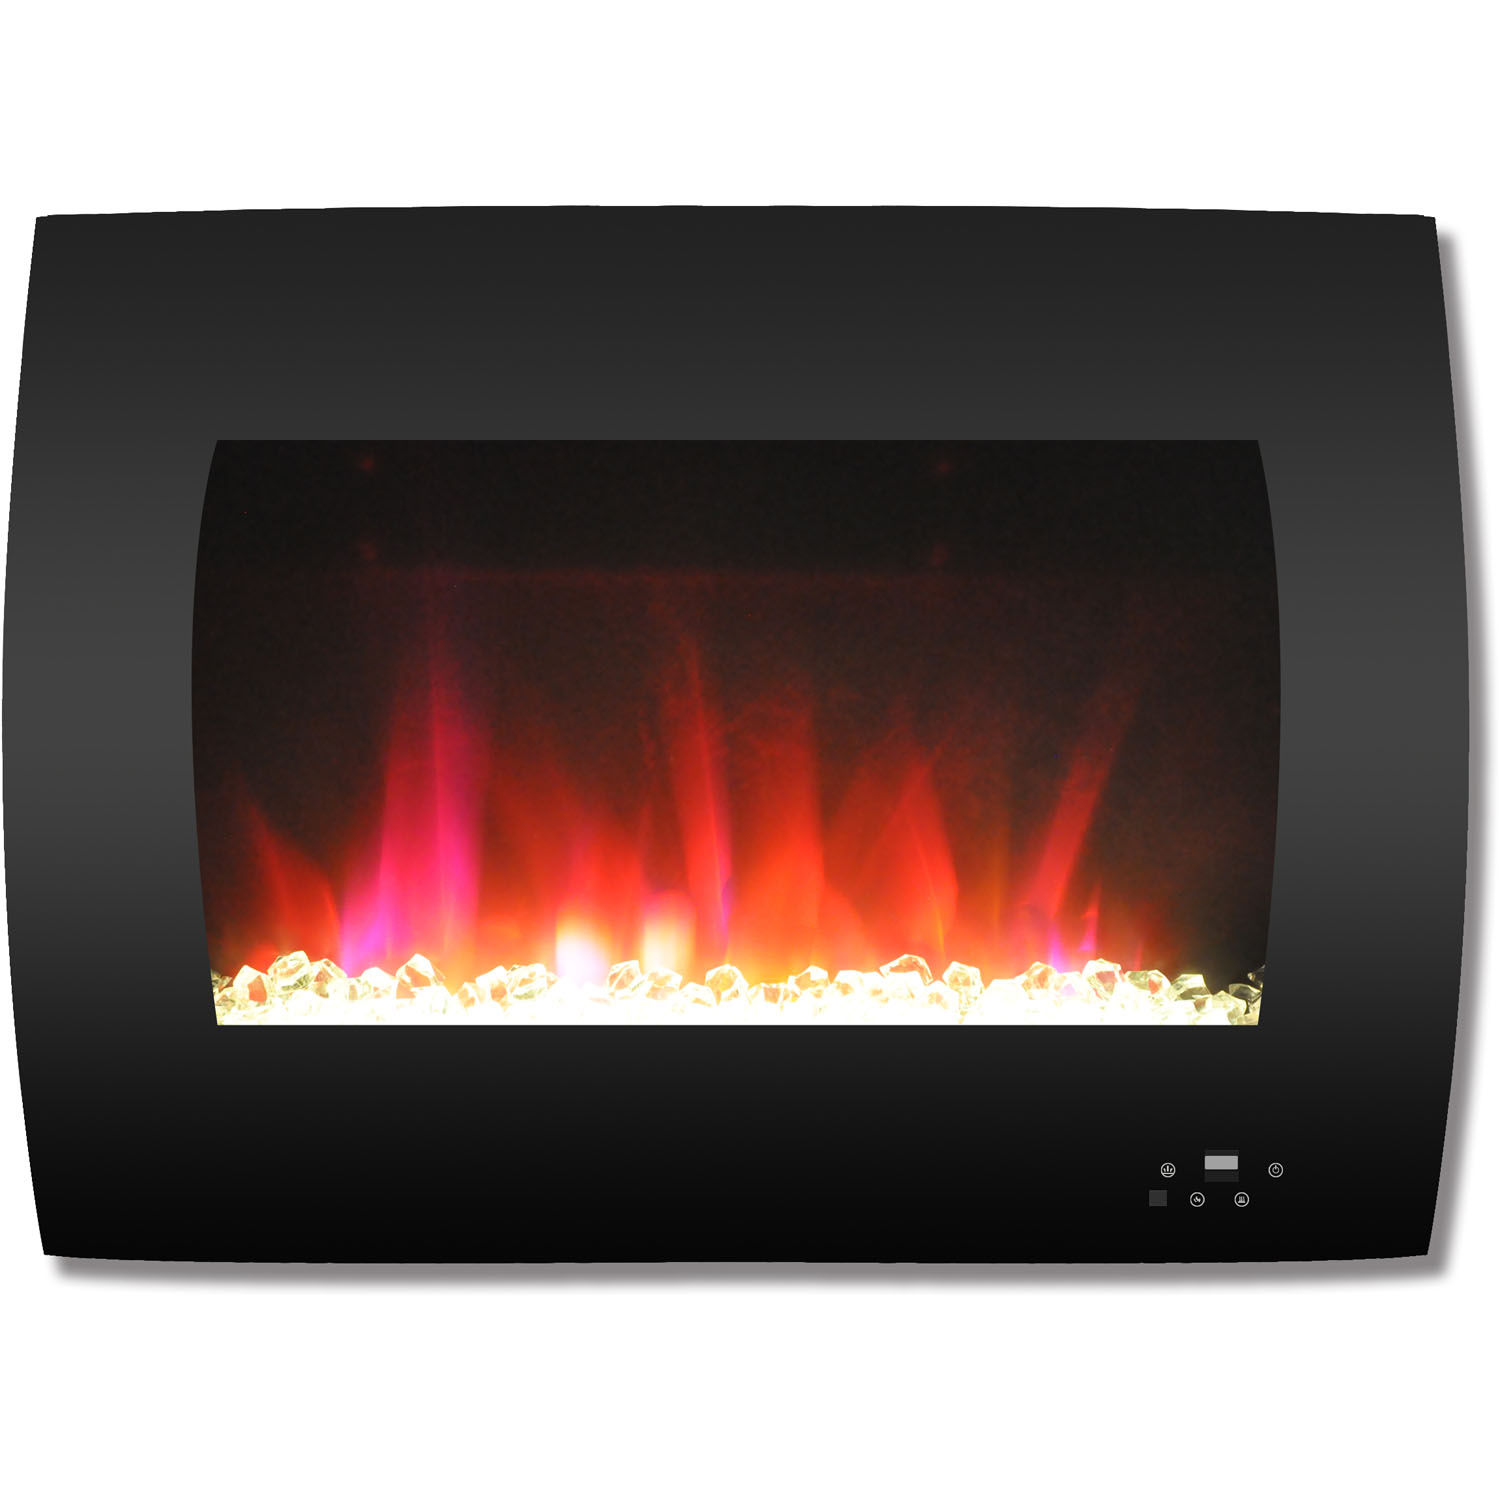 "Cambridge 26"" Curved Wall-Mount Electric Fireplace Heater with Multi-Color LED Flames and Crystal Rock Display"